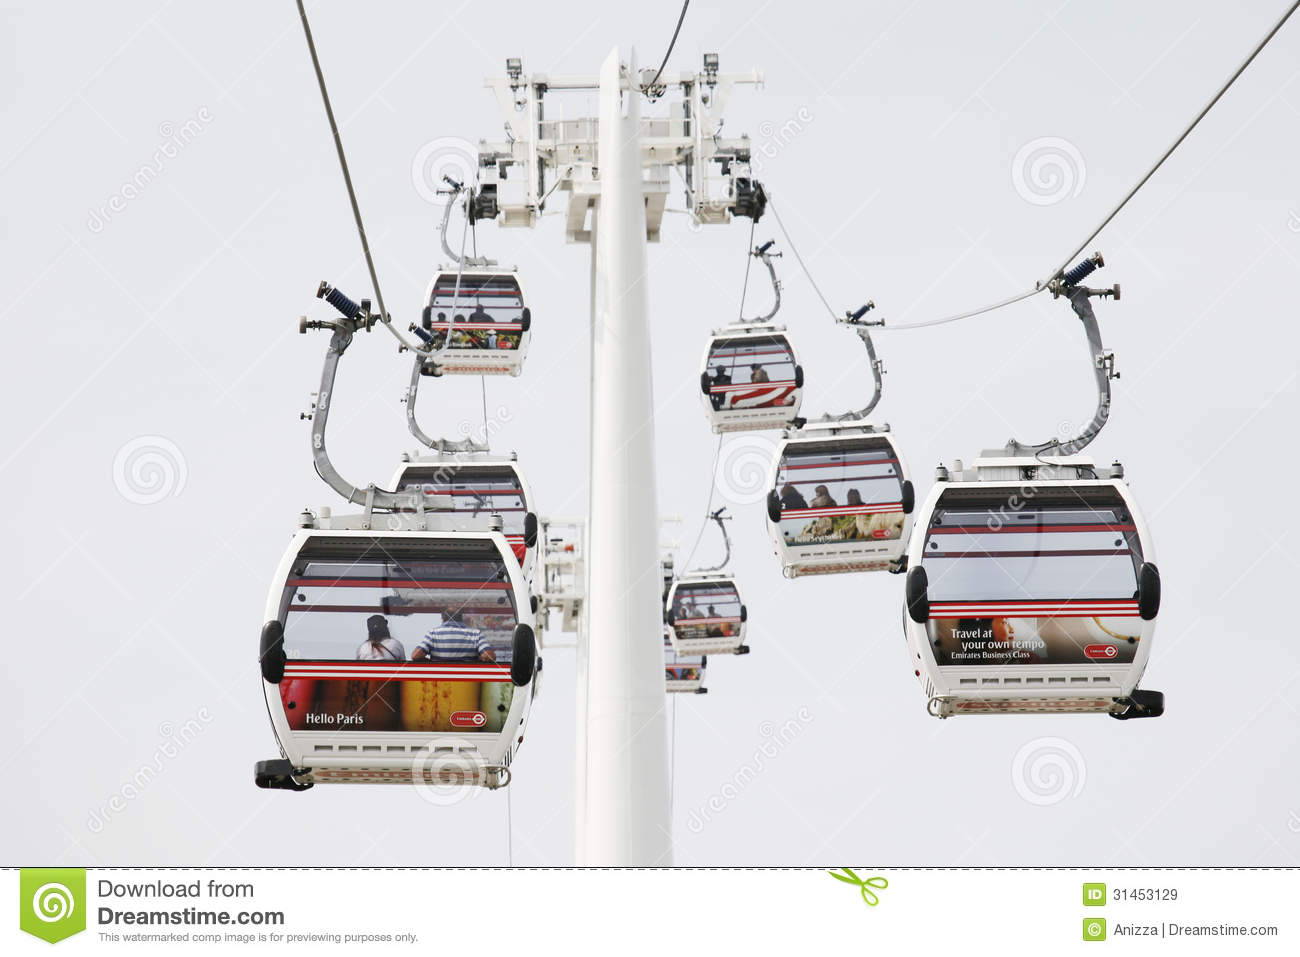 London Transport Emirate Air Line, London Thames Cable Car